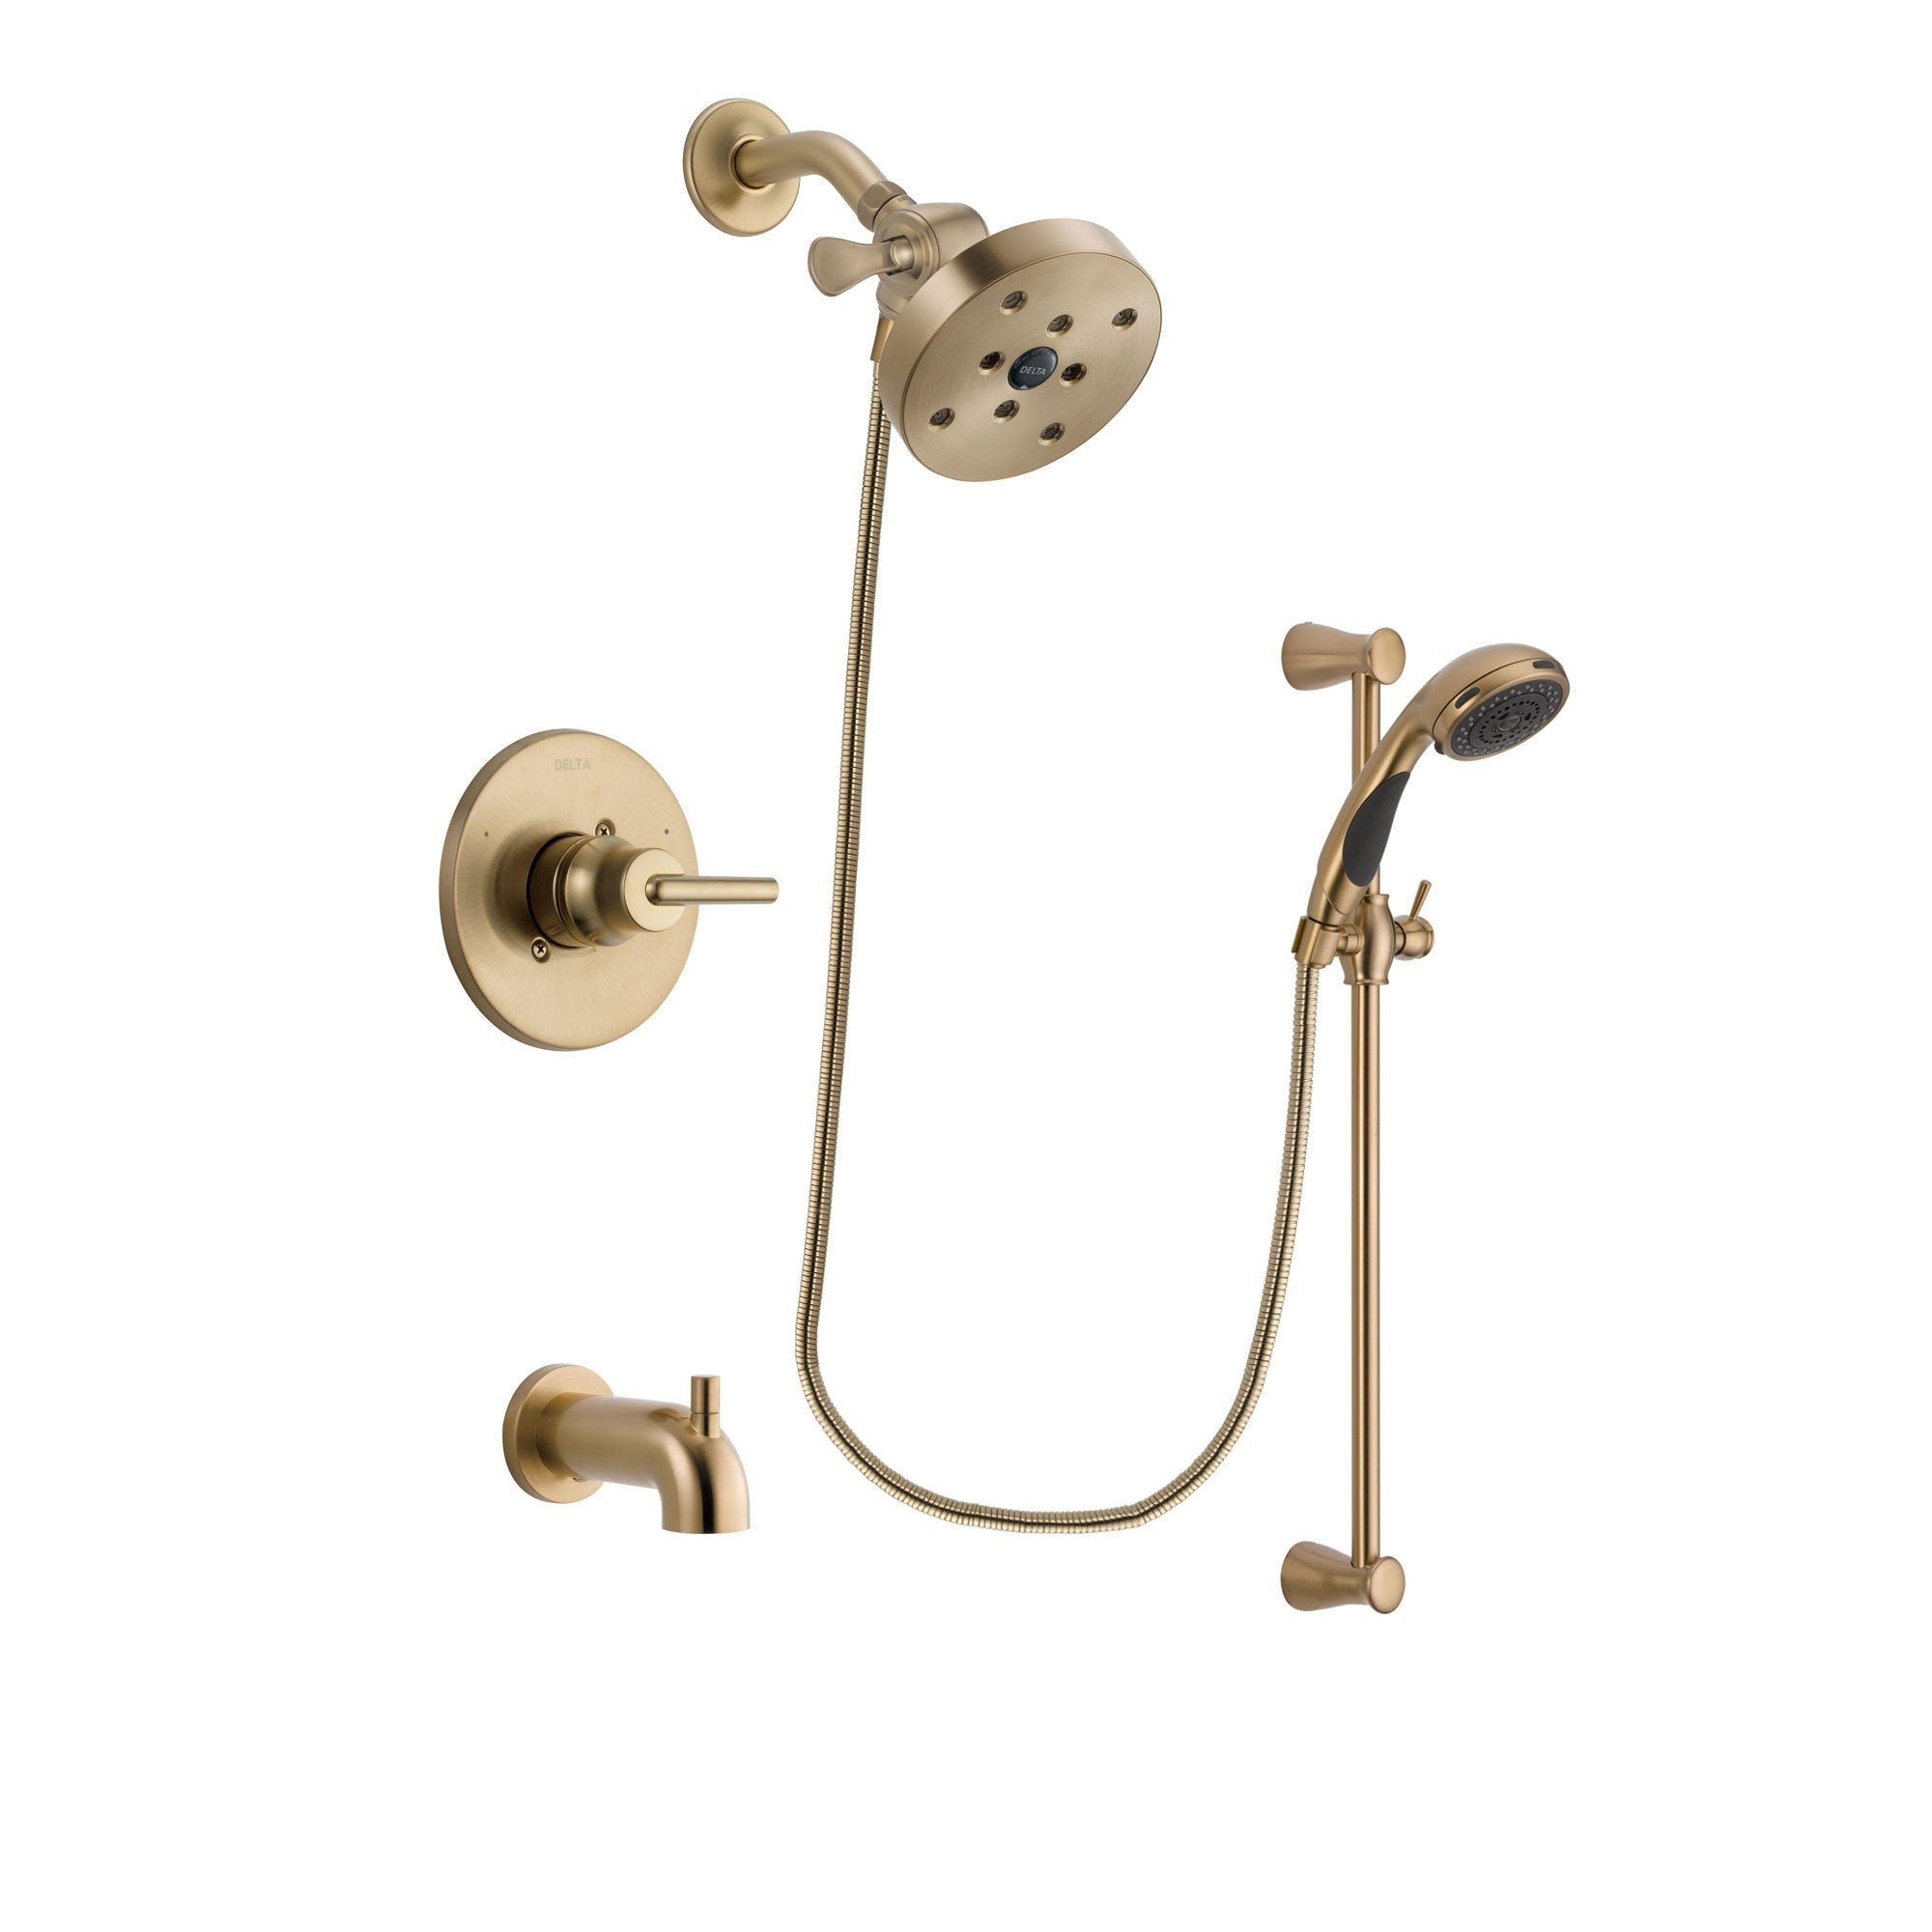 delta trinsic champagne bronze finish tub and shower faucet system package with 51